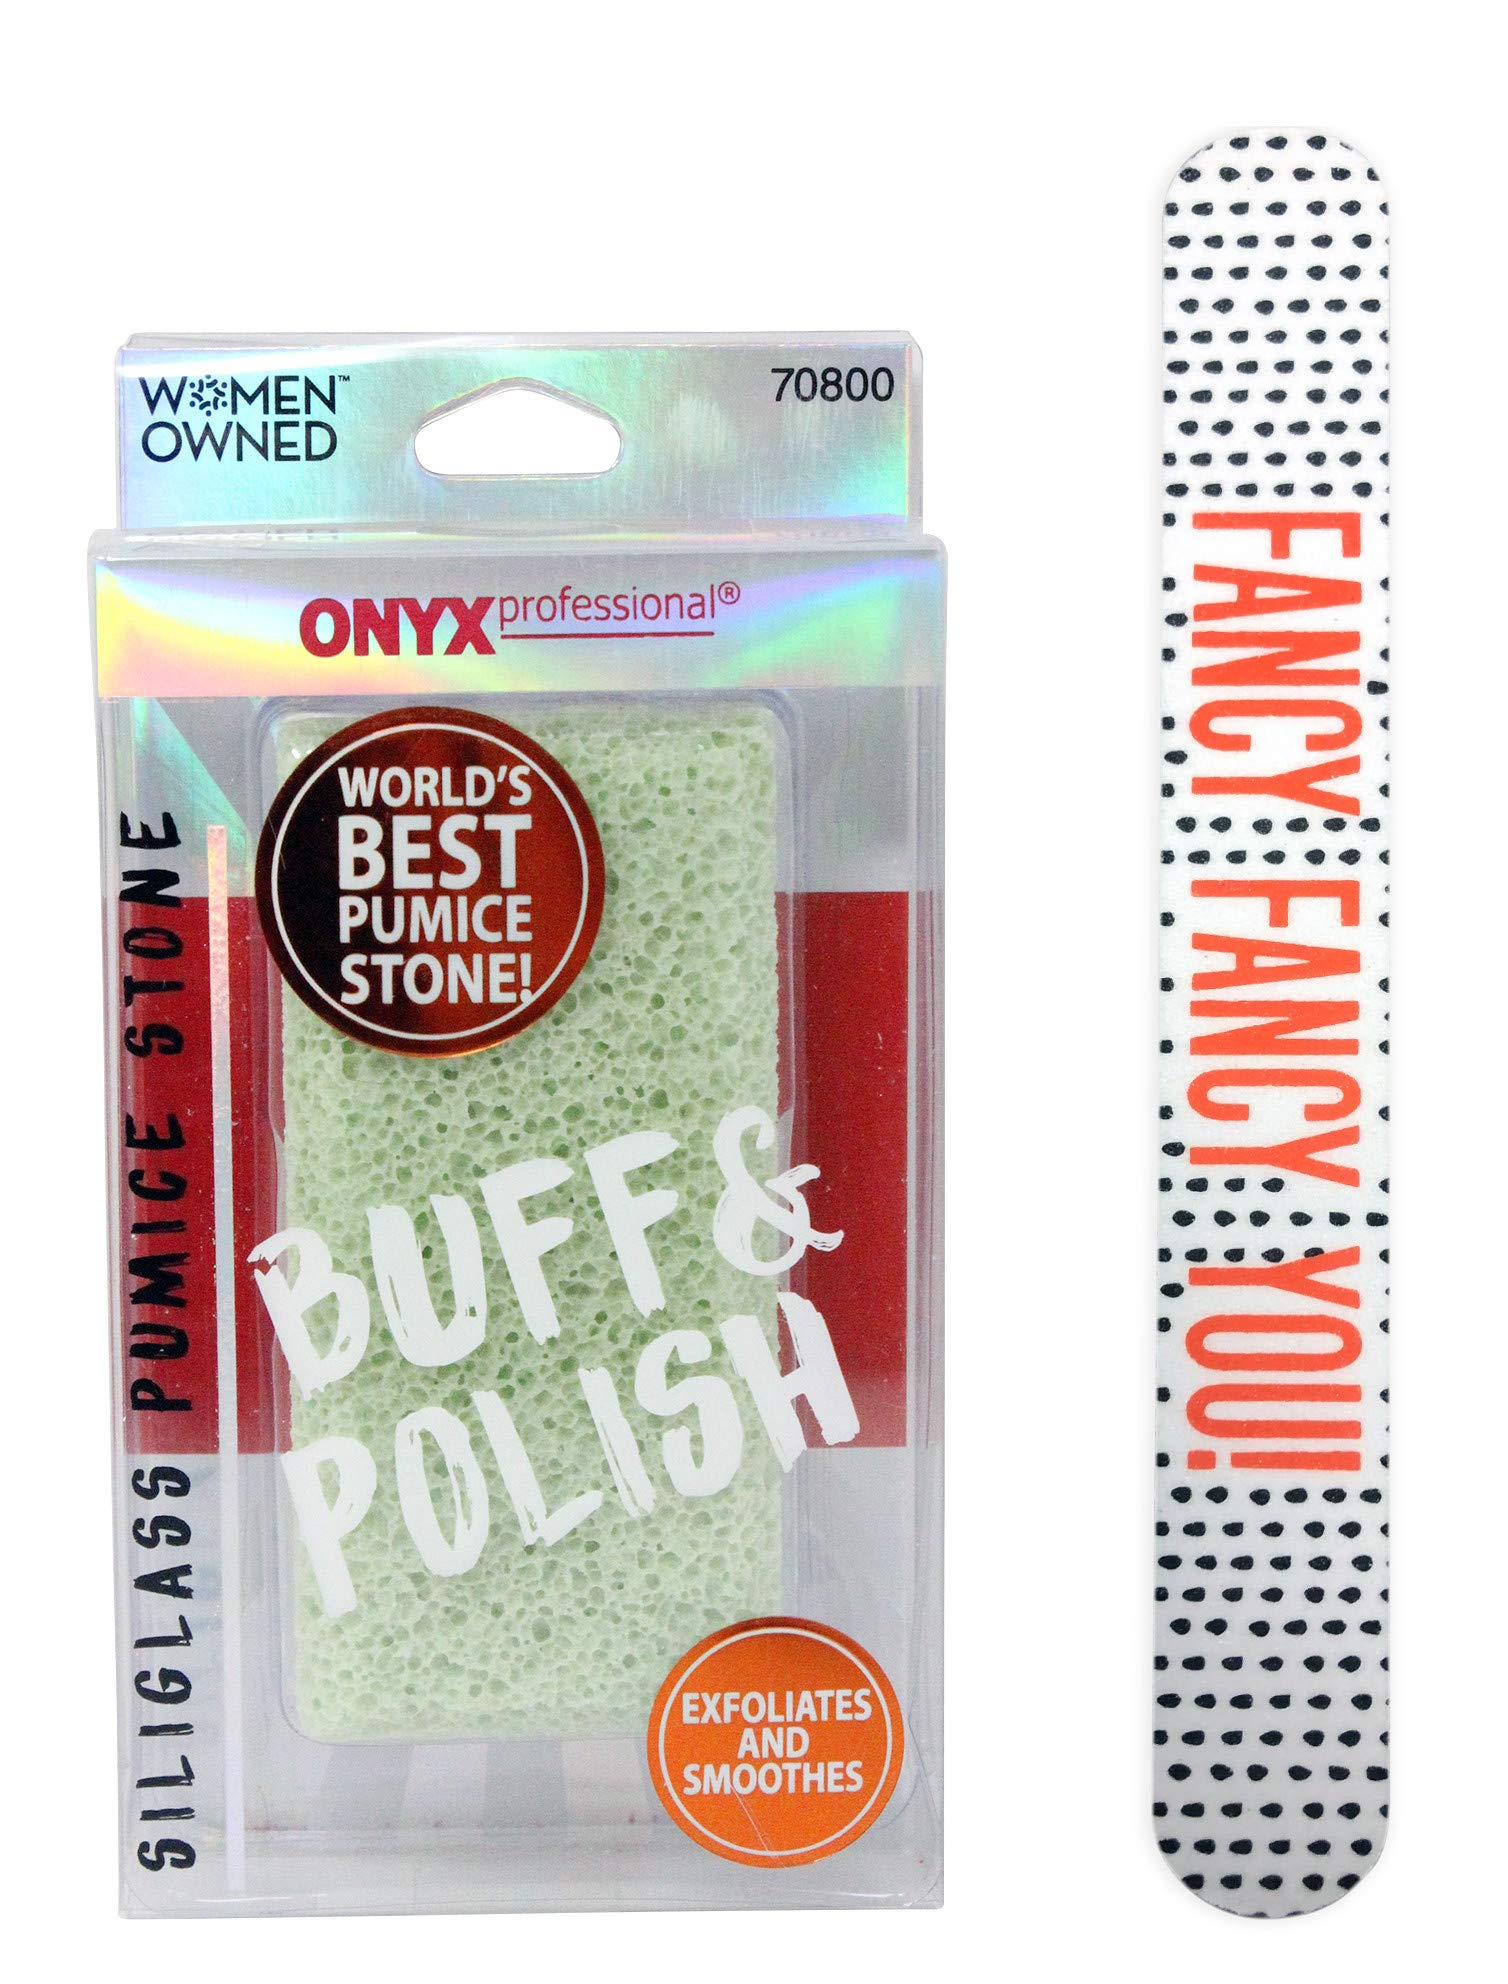 Onyx Professional 100% Siliglass Double Sided Pumice Stone with 7 Inch Nail File